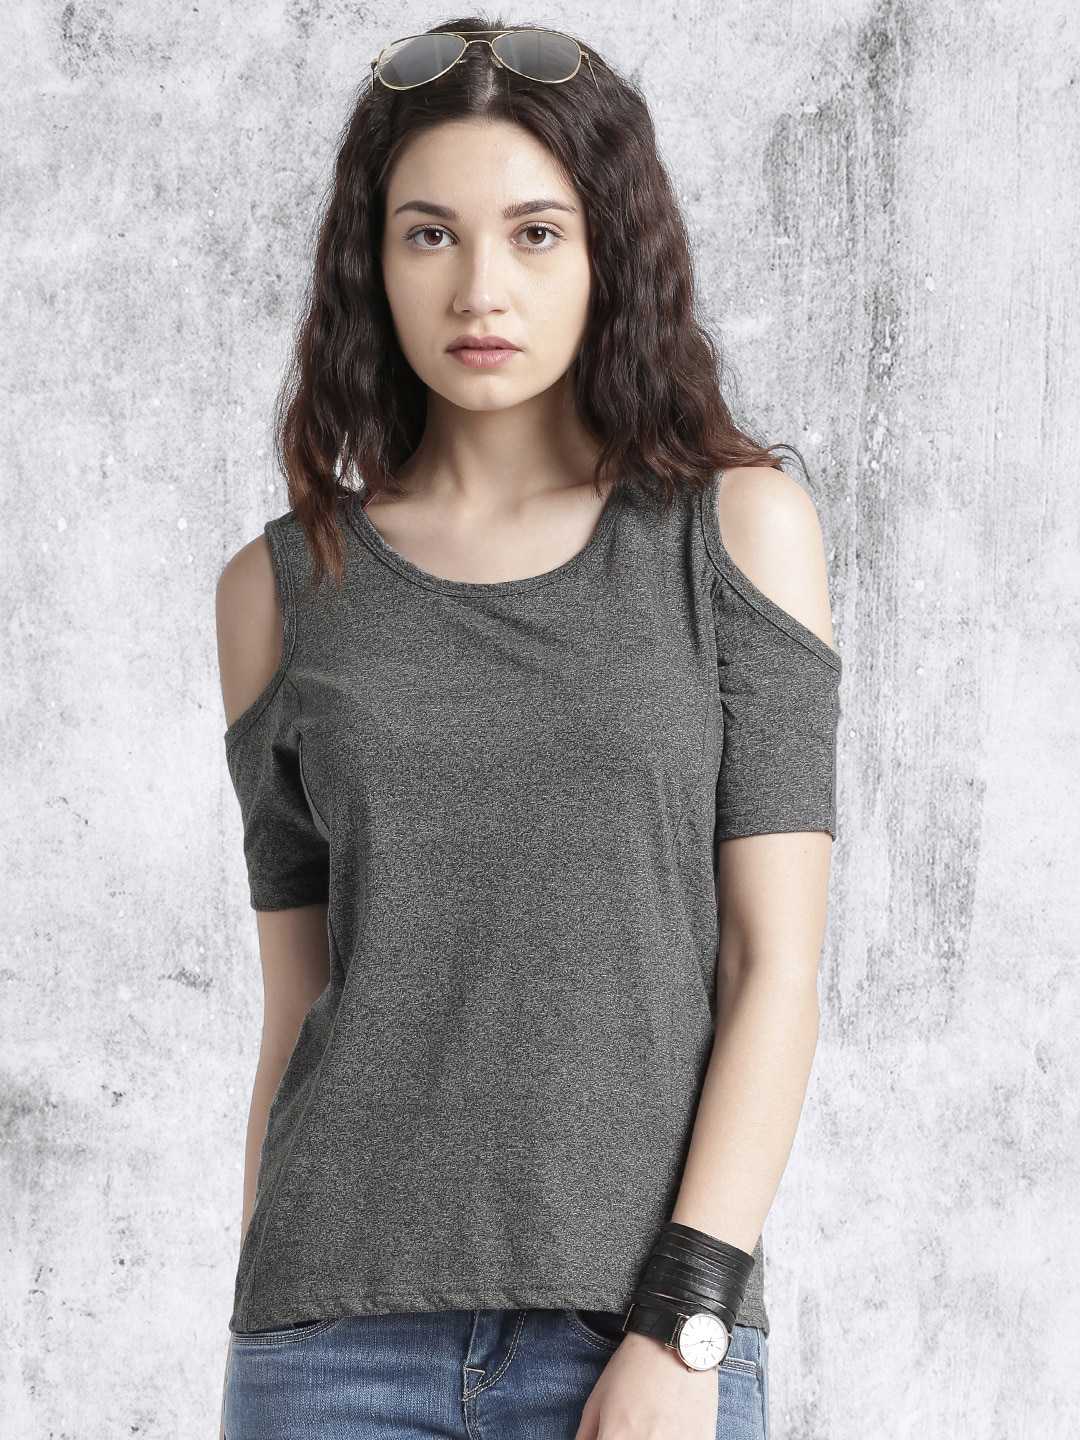 a311b378bfa7c Cold Shoulder Tops - Buy Cold Shoulder Tops for Women Online - Myntra